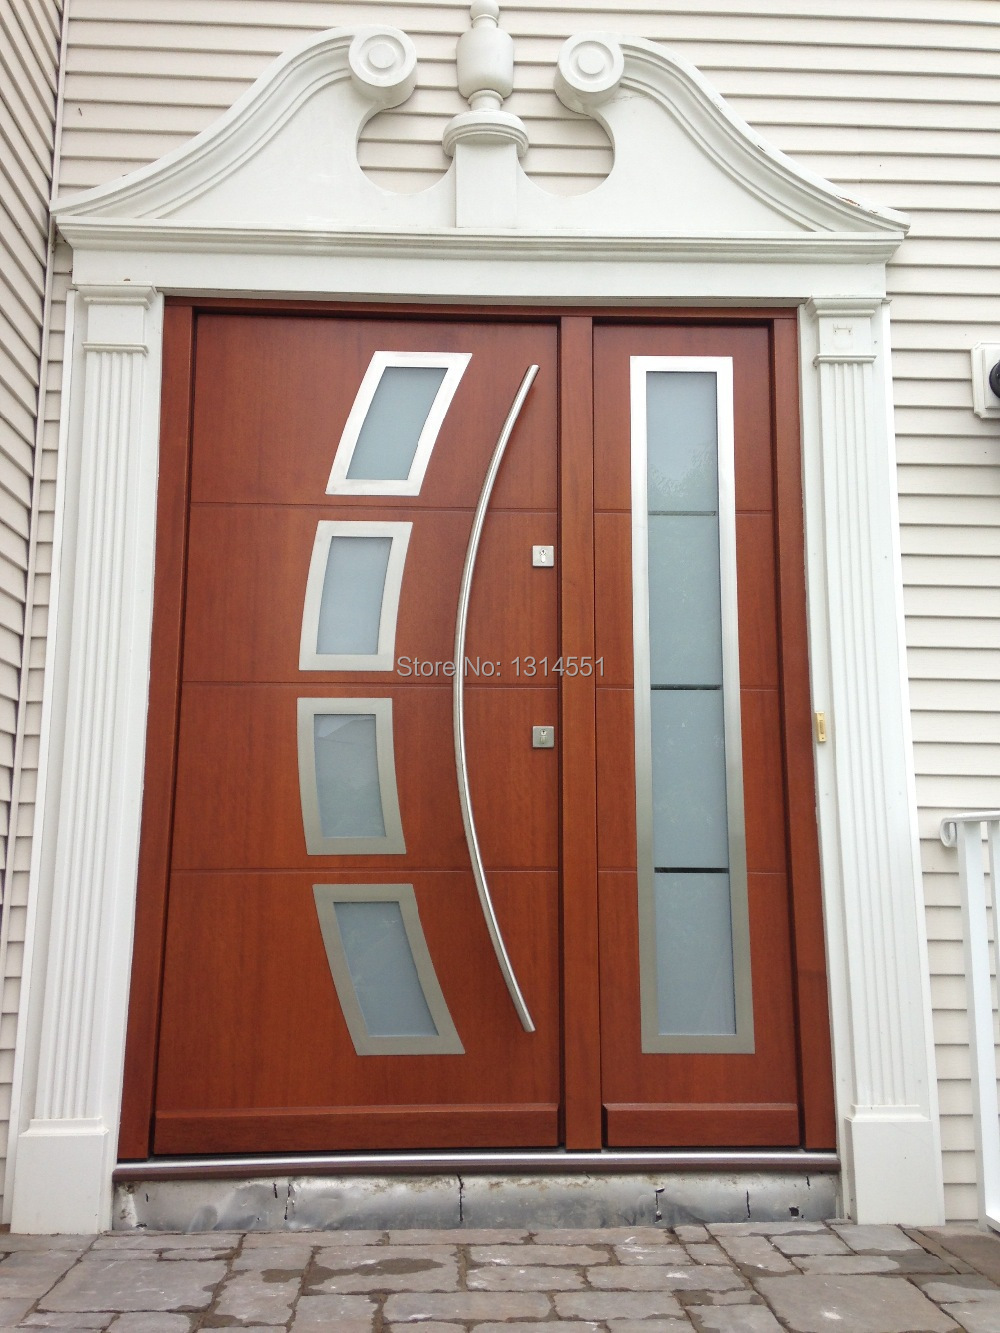 Timber Glass Doors Us 259 Arch Shaped 60 Inches 1500mm Modern Stainless Steel Entrance Entry Office Store Front Wood Timber Glass Door Pull Push Handle In Door